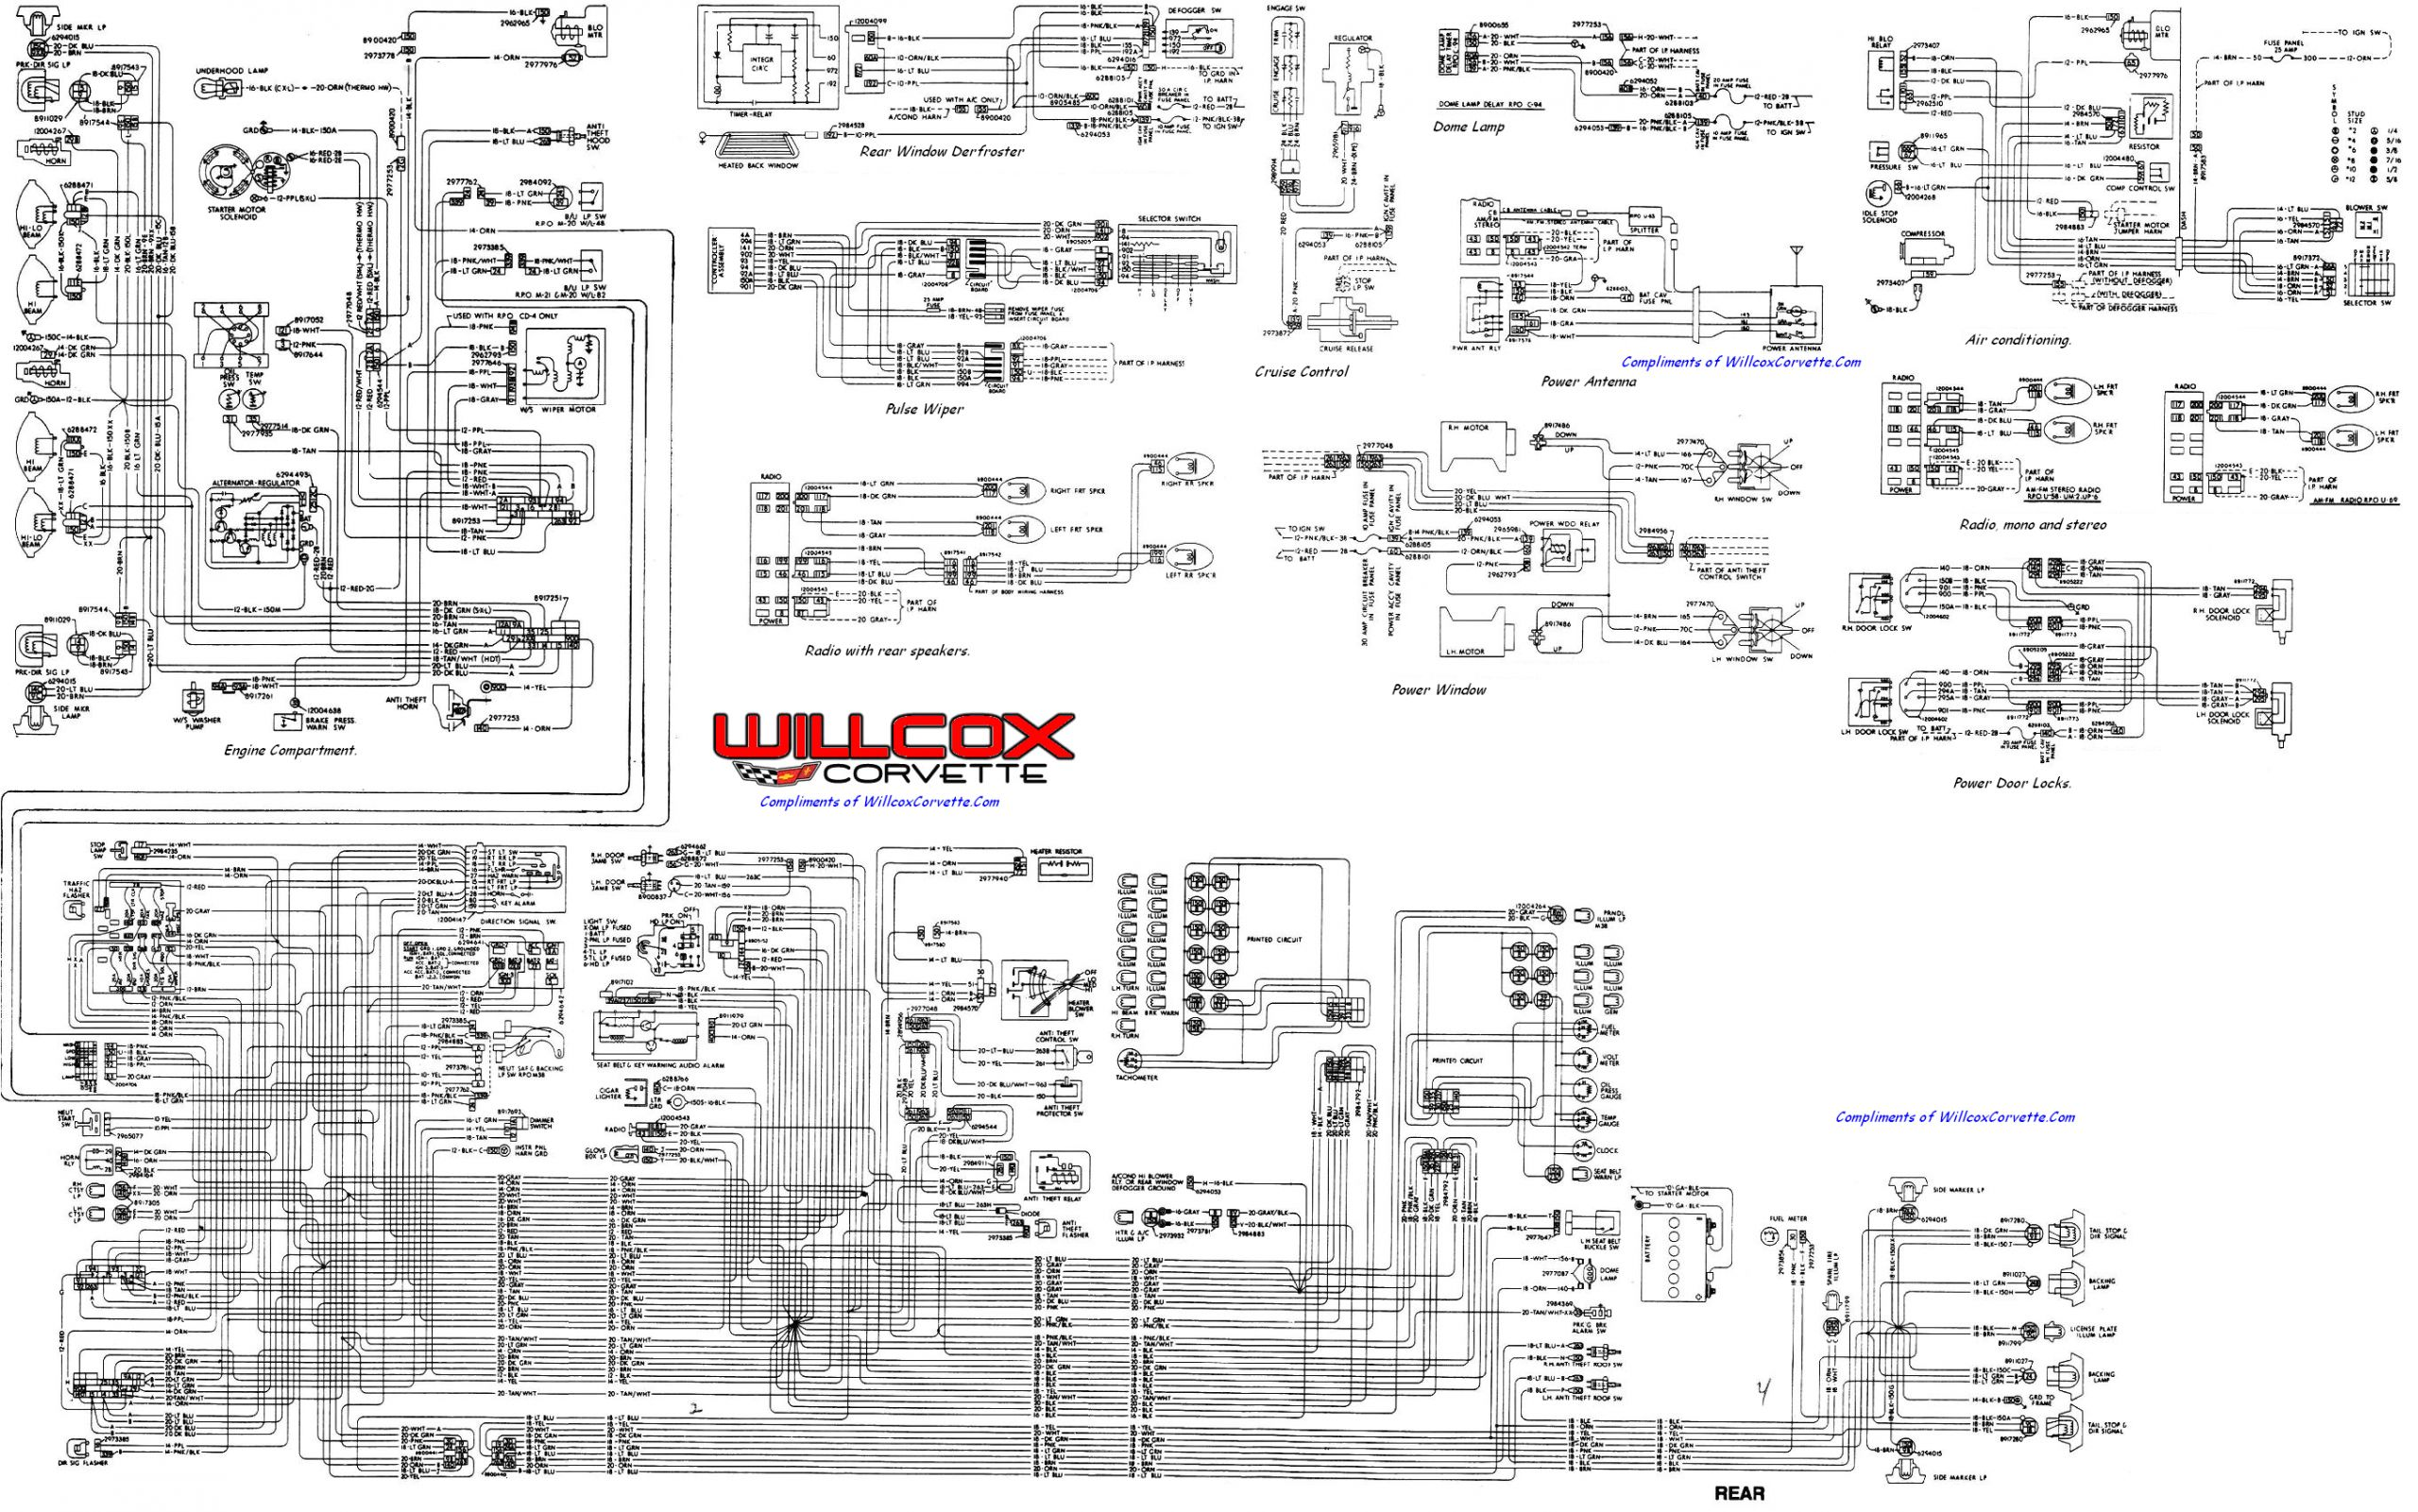 78 tracer schematic use this one png